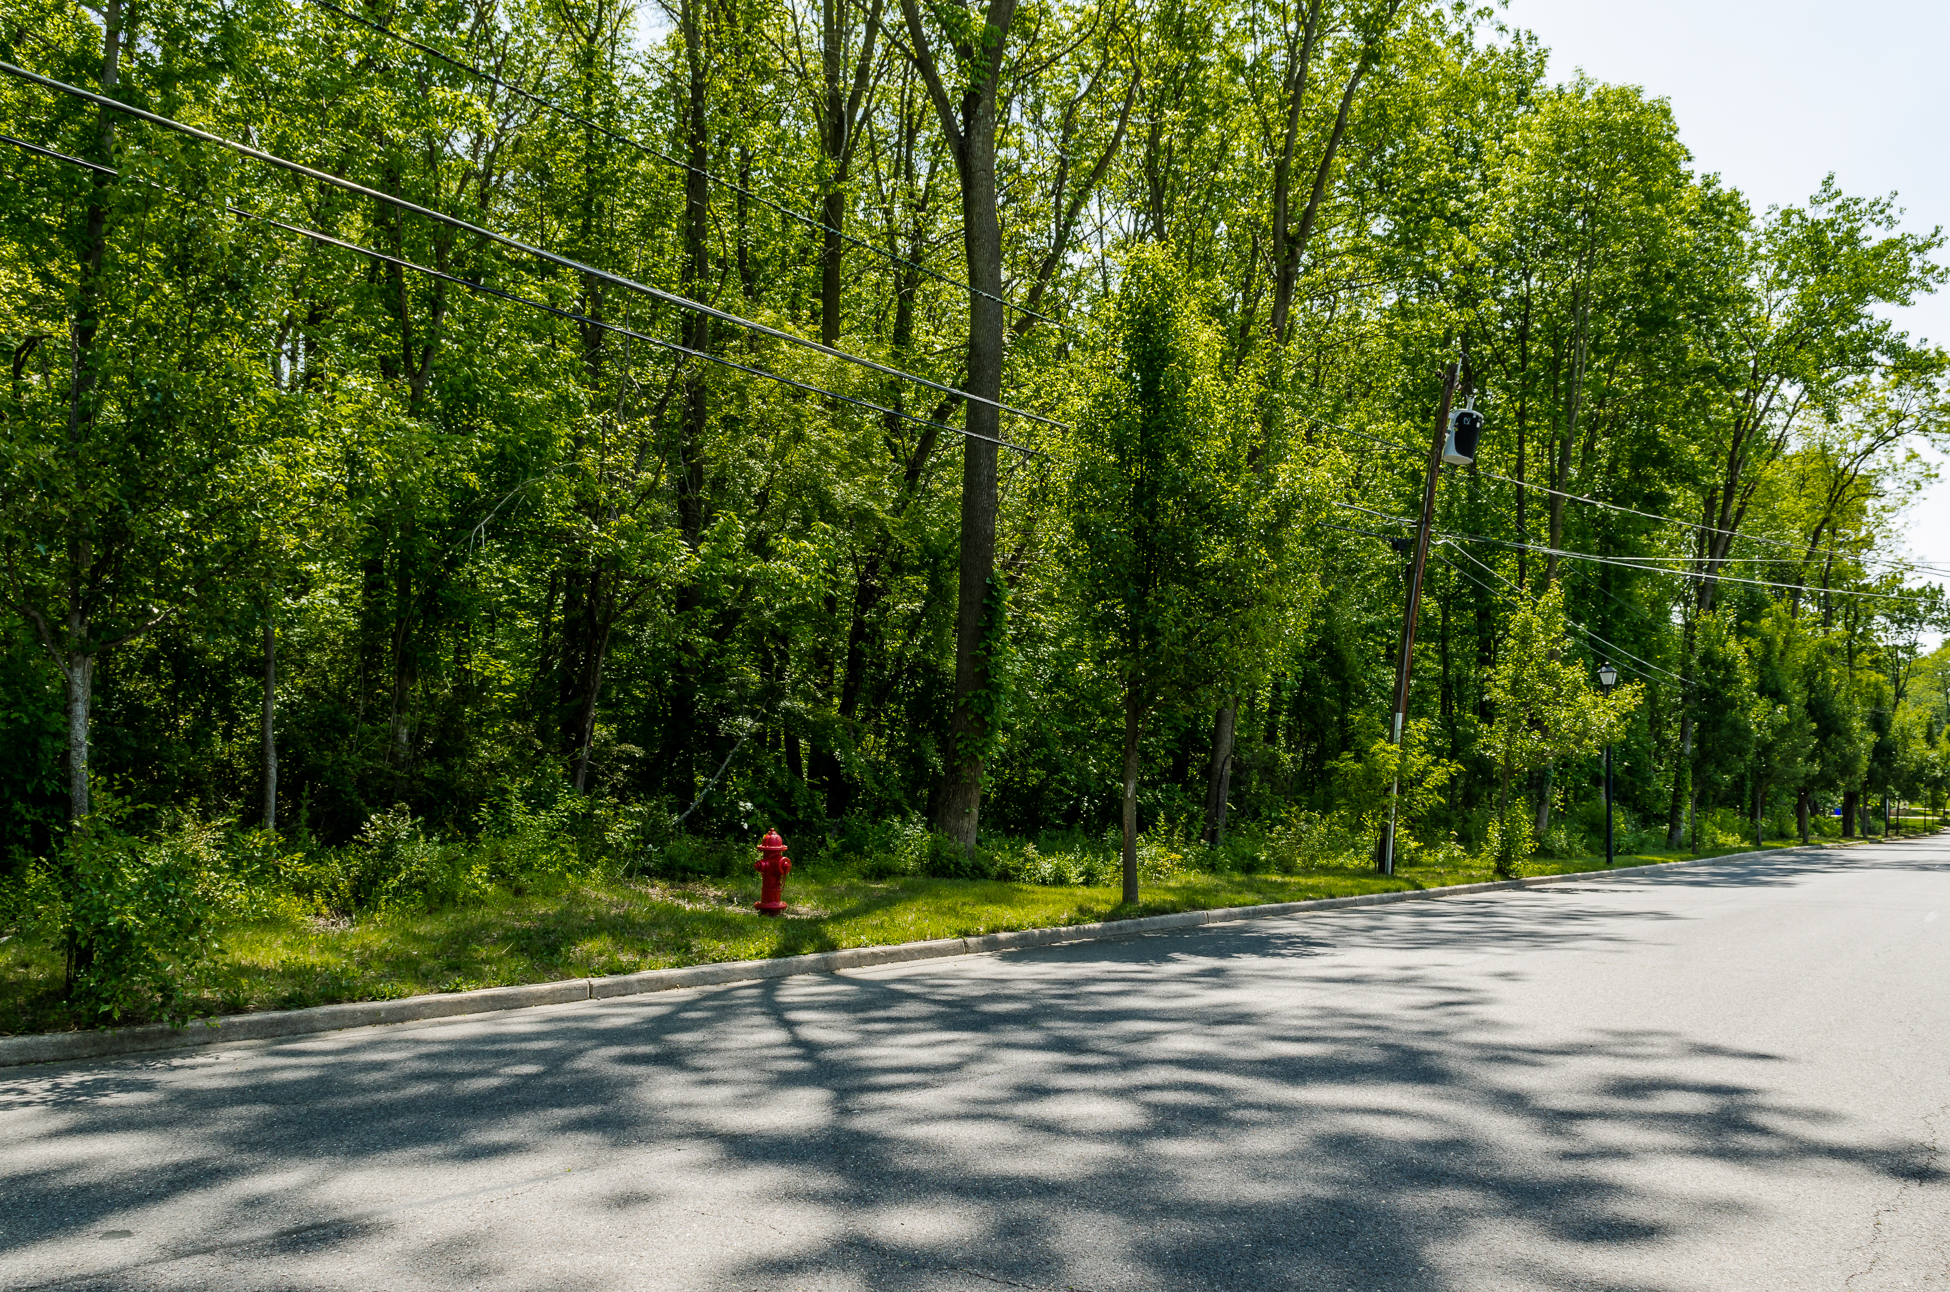 Land for Sale at Improved and Ready-to-Build in Fieldsboro 00 Union Street Lot 1 Fieldsboro, 08505 United States